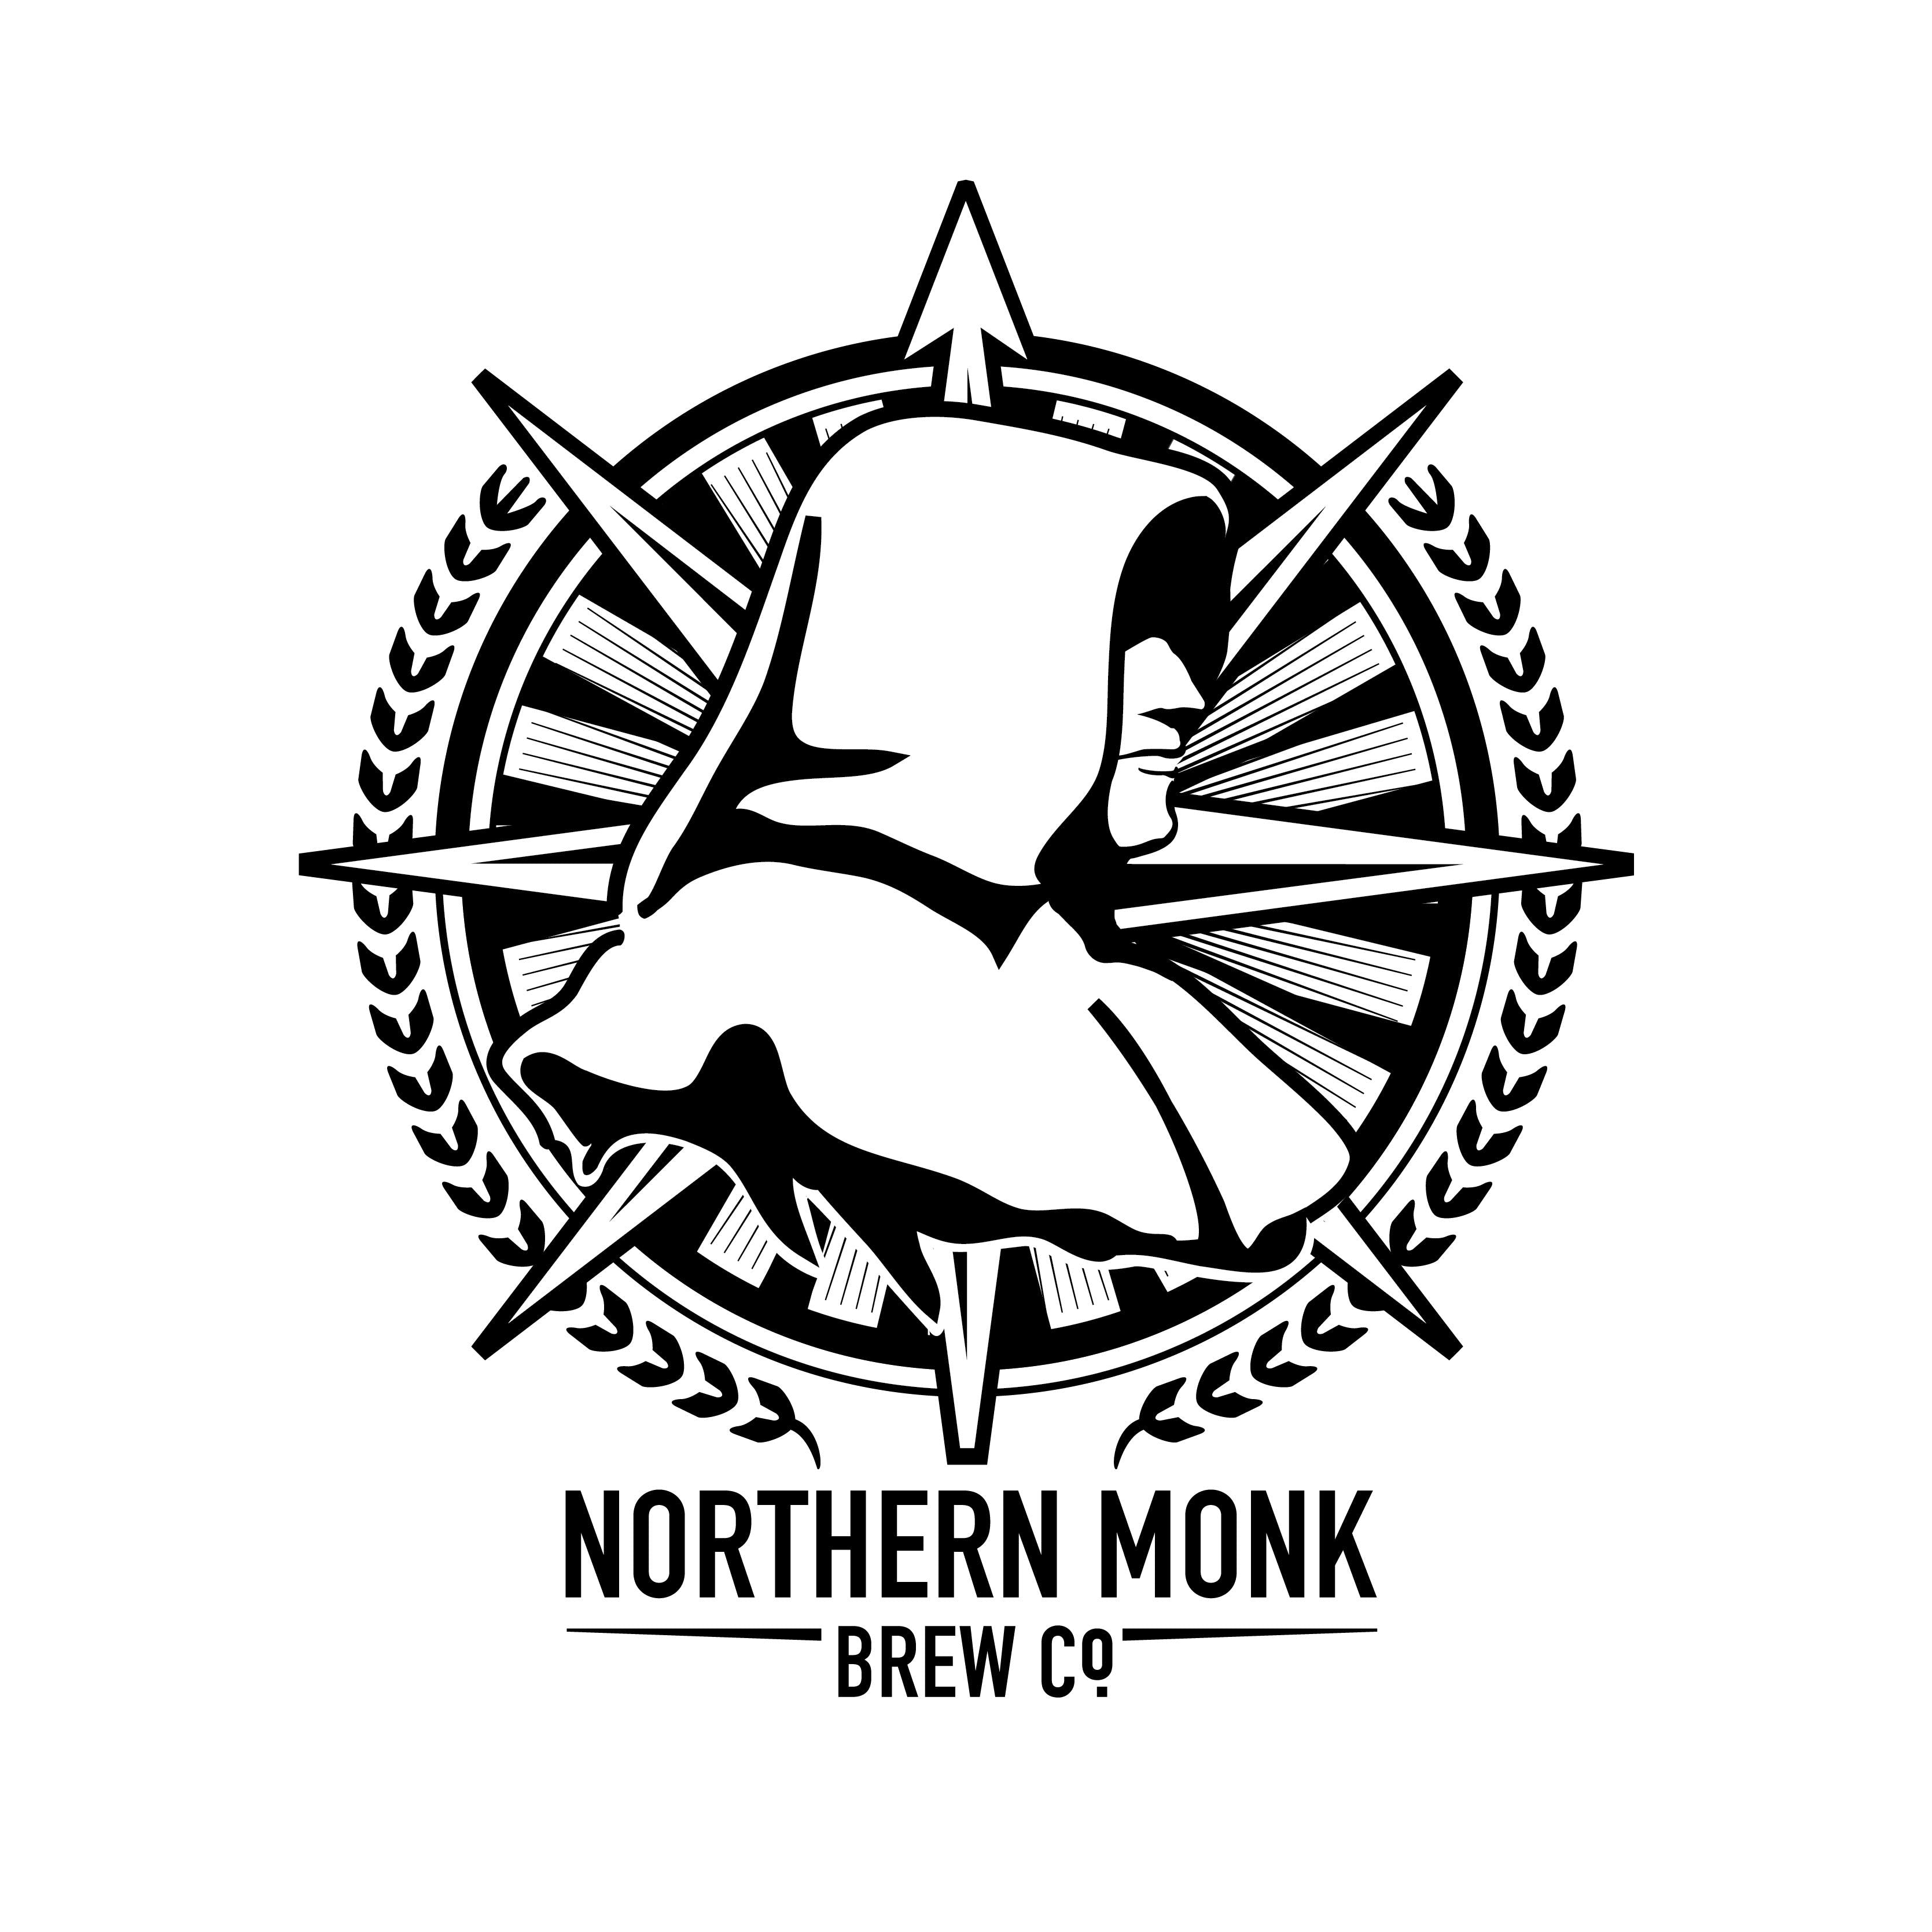 Northern Monk logo